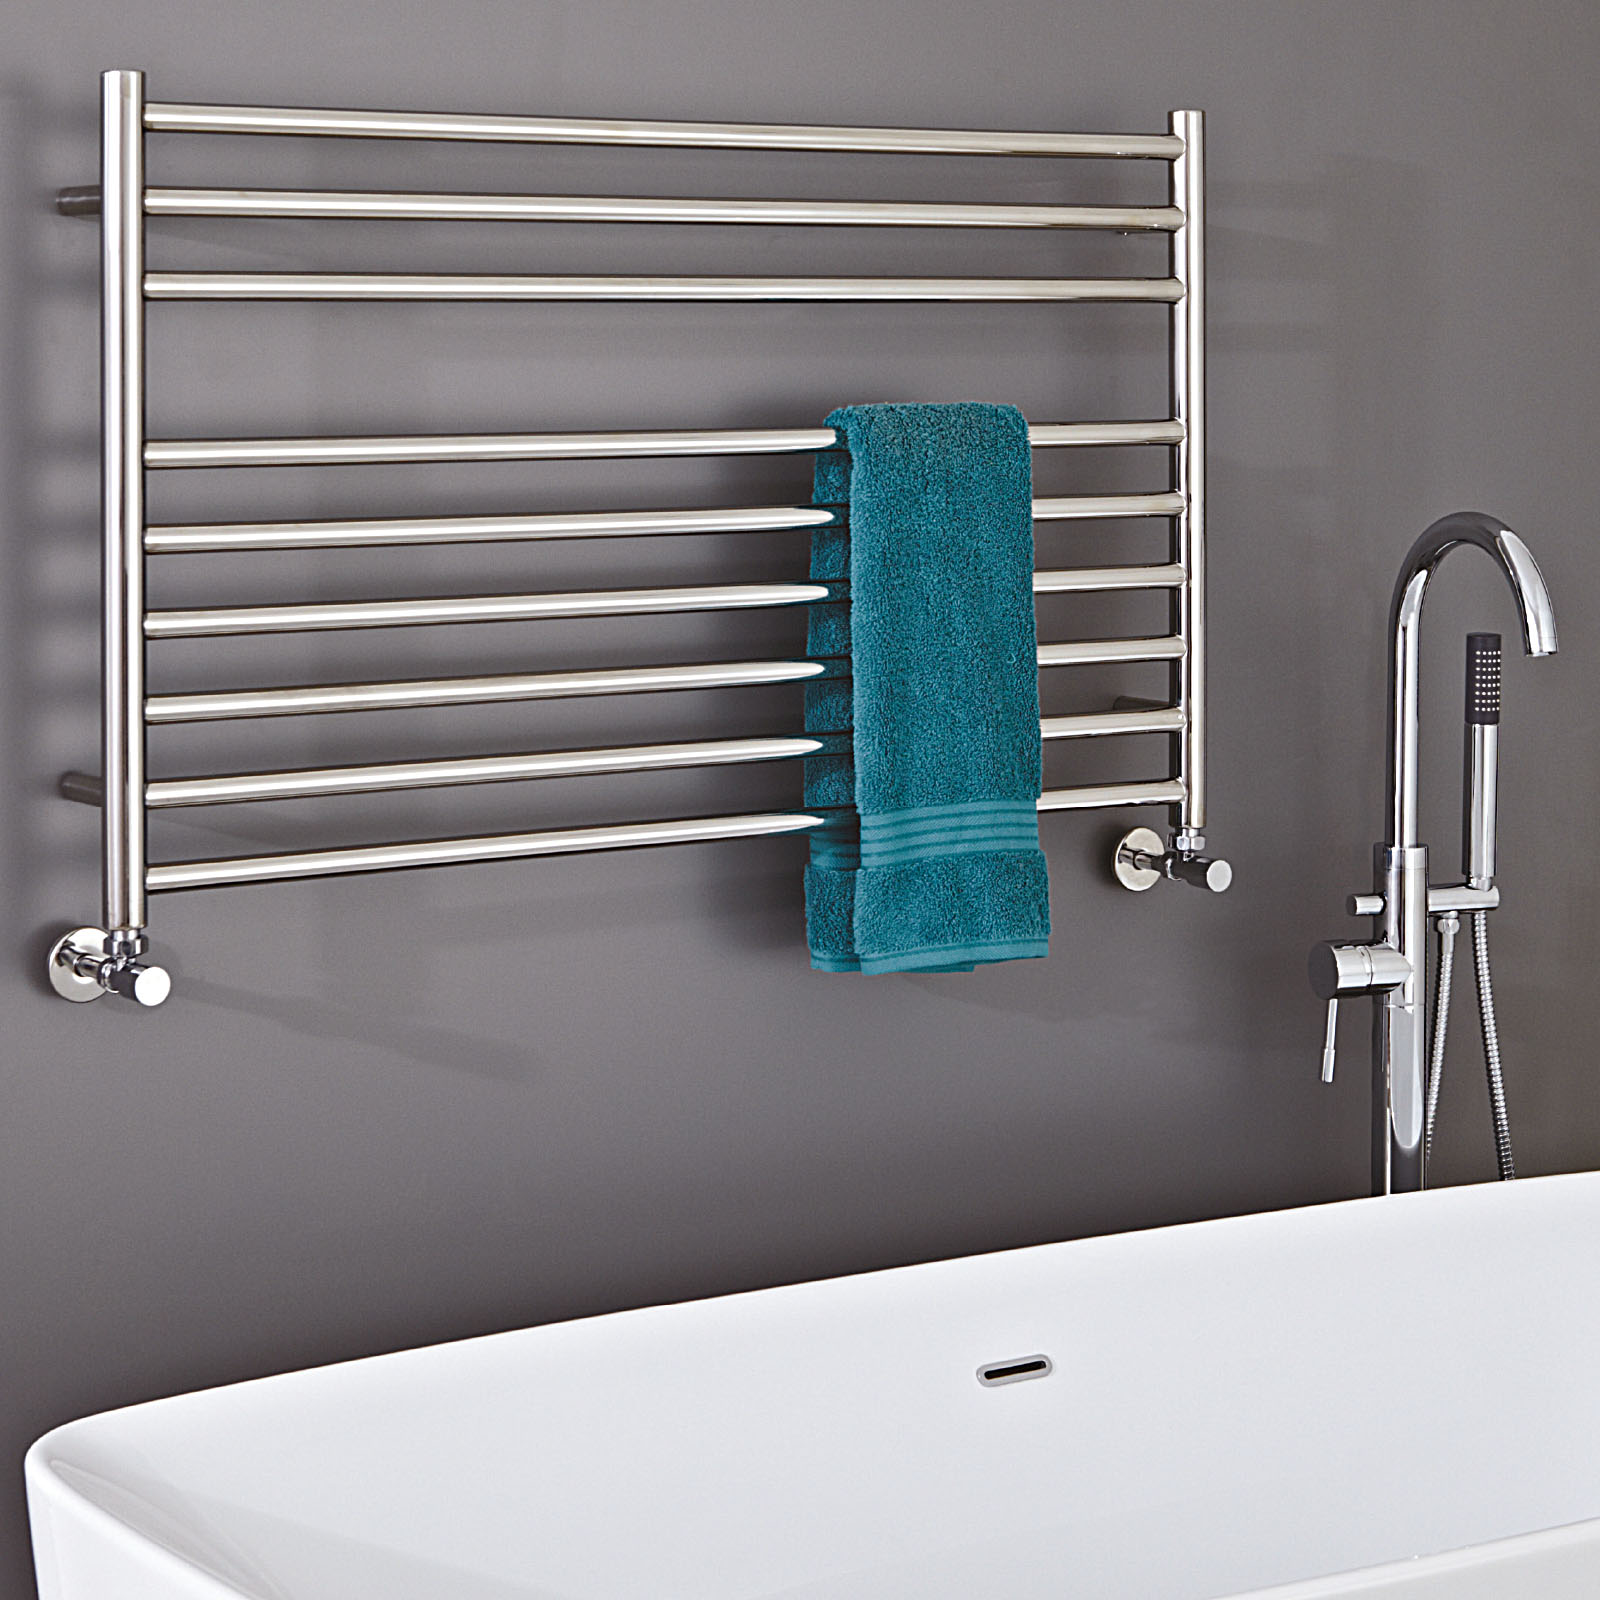 Zonta Stainless Steel Towel Radiators In 4 Sizes